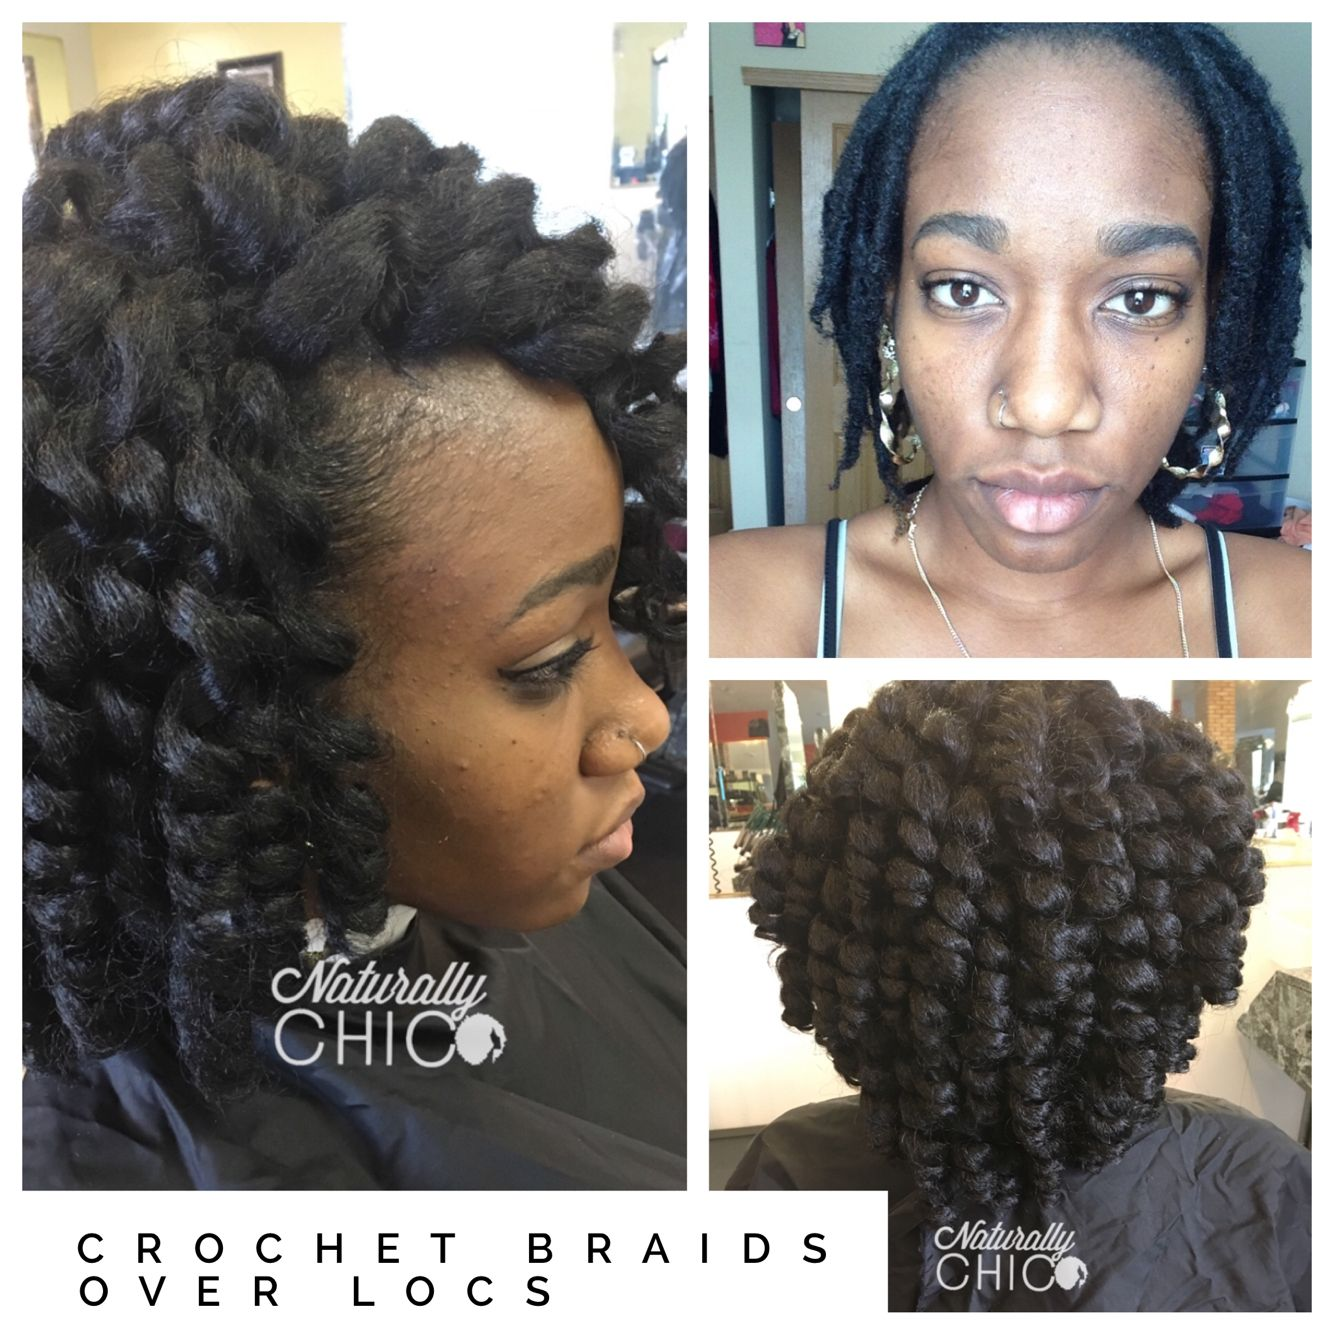 Jamaican Wedding Hairstyles: Crochet Braids Over Locs. Jamaican Bounce Hair Was Used